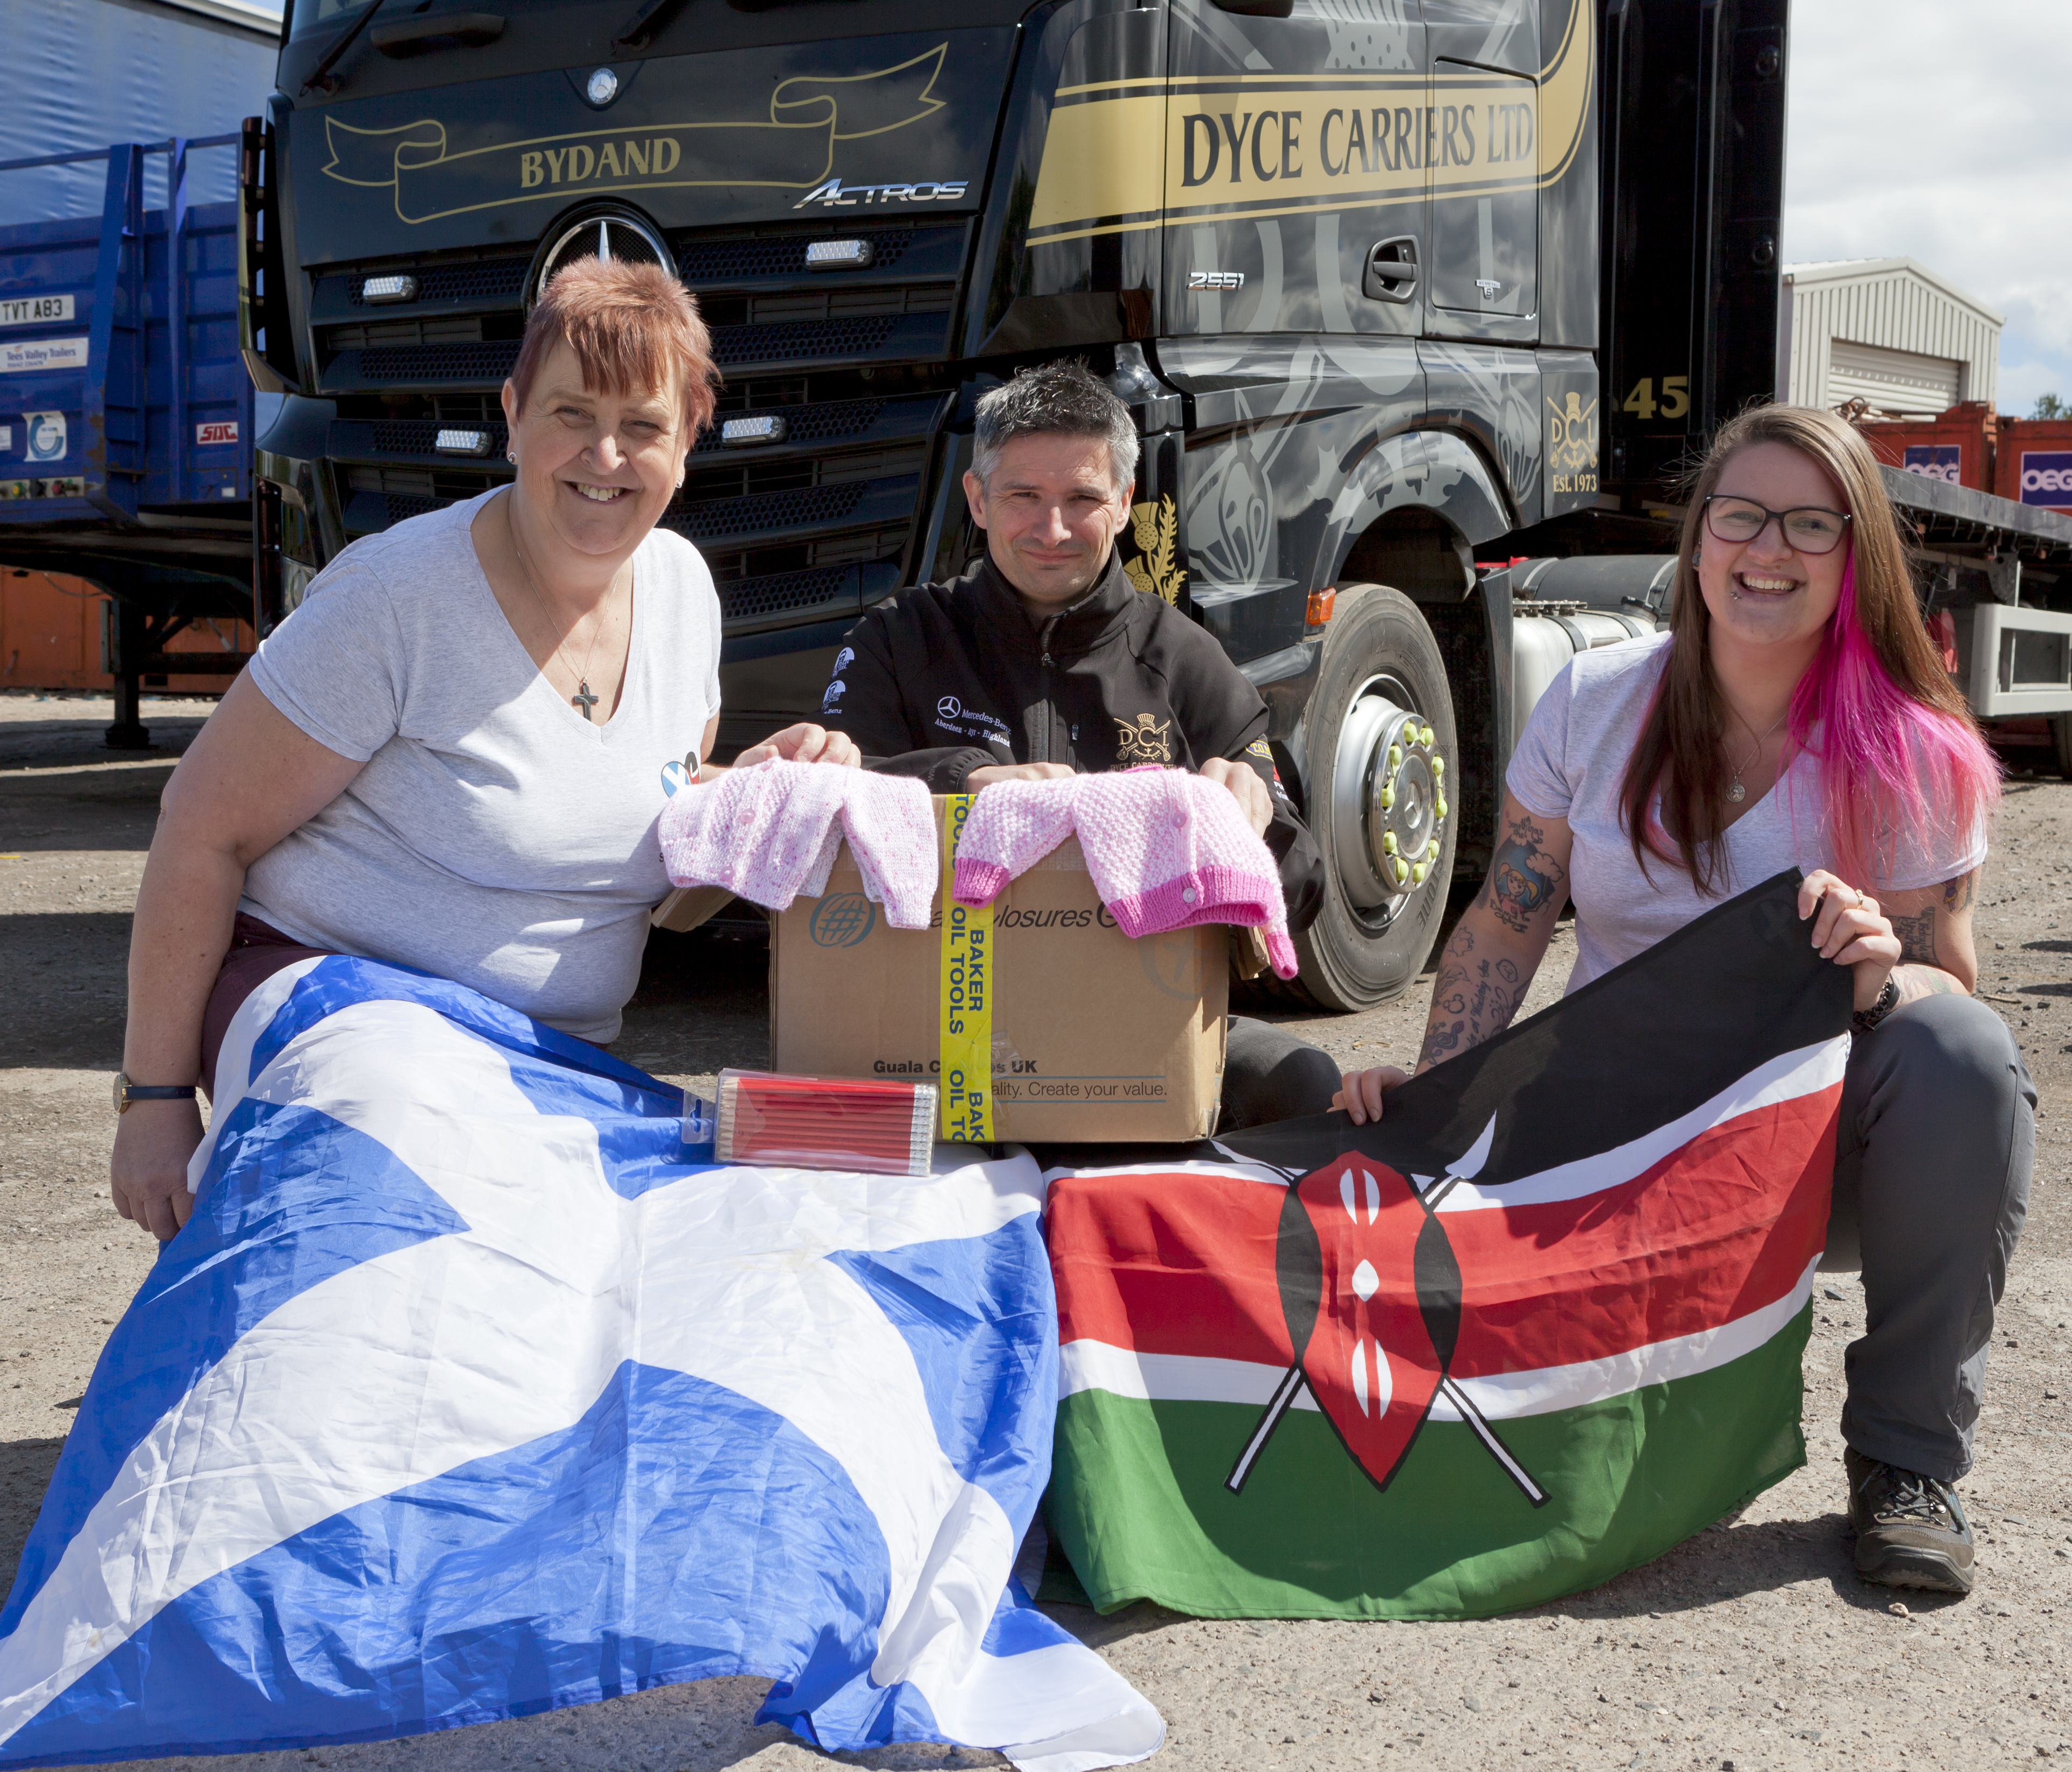 Moyra Cowie, Dyce Carriers managing director Jason Moir and Rachel Lewis.